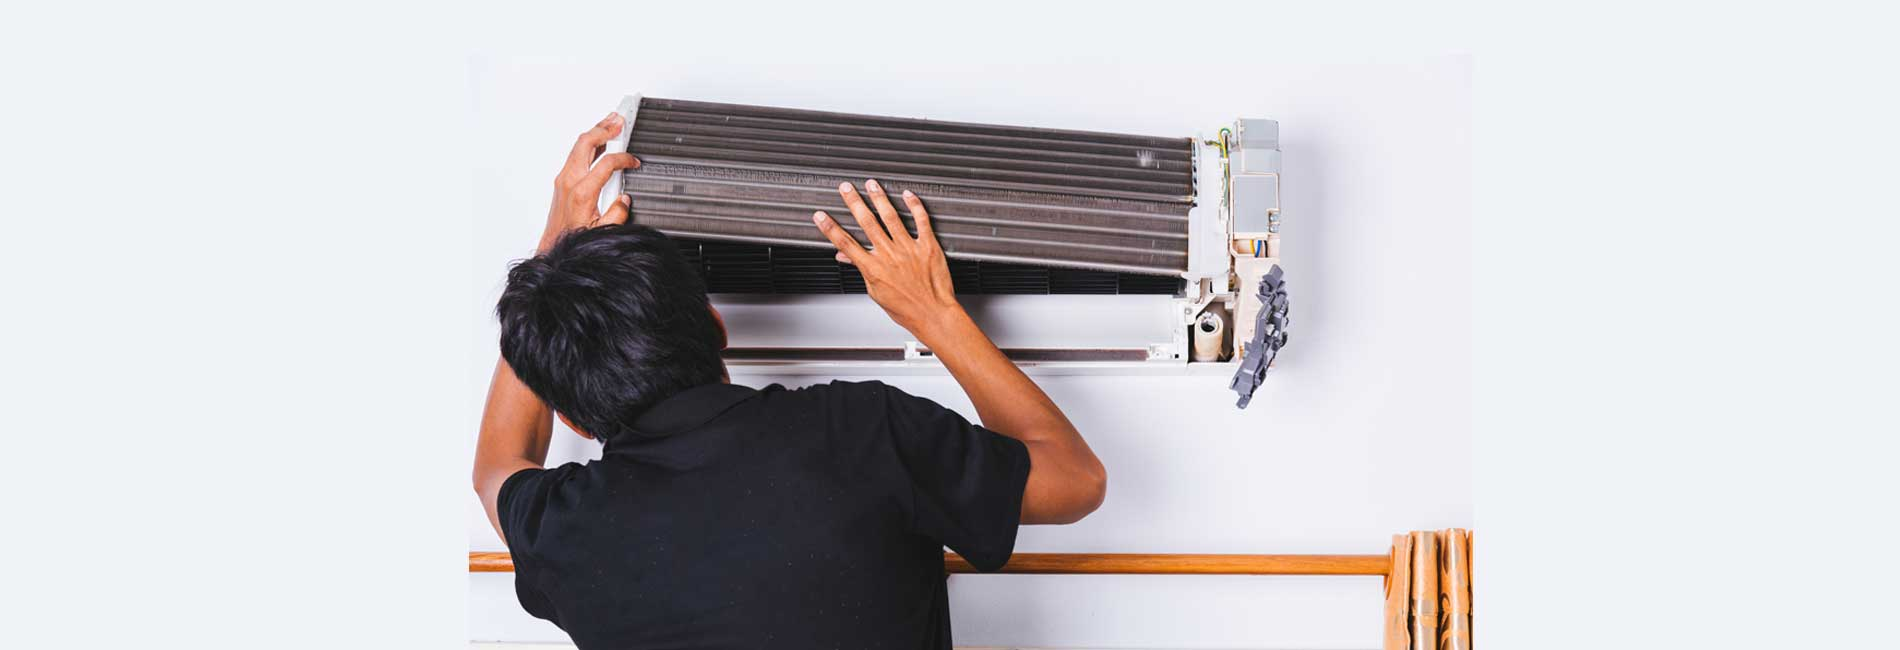 Samsung AC Repair in Kottivakkam